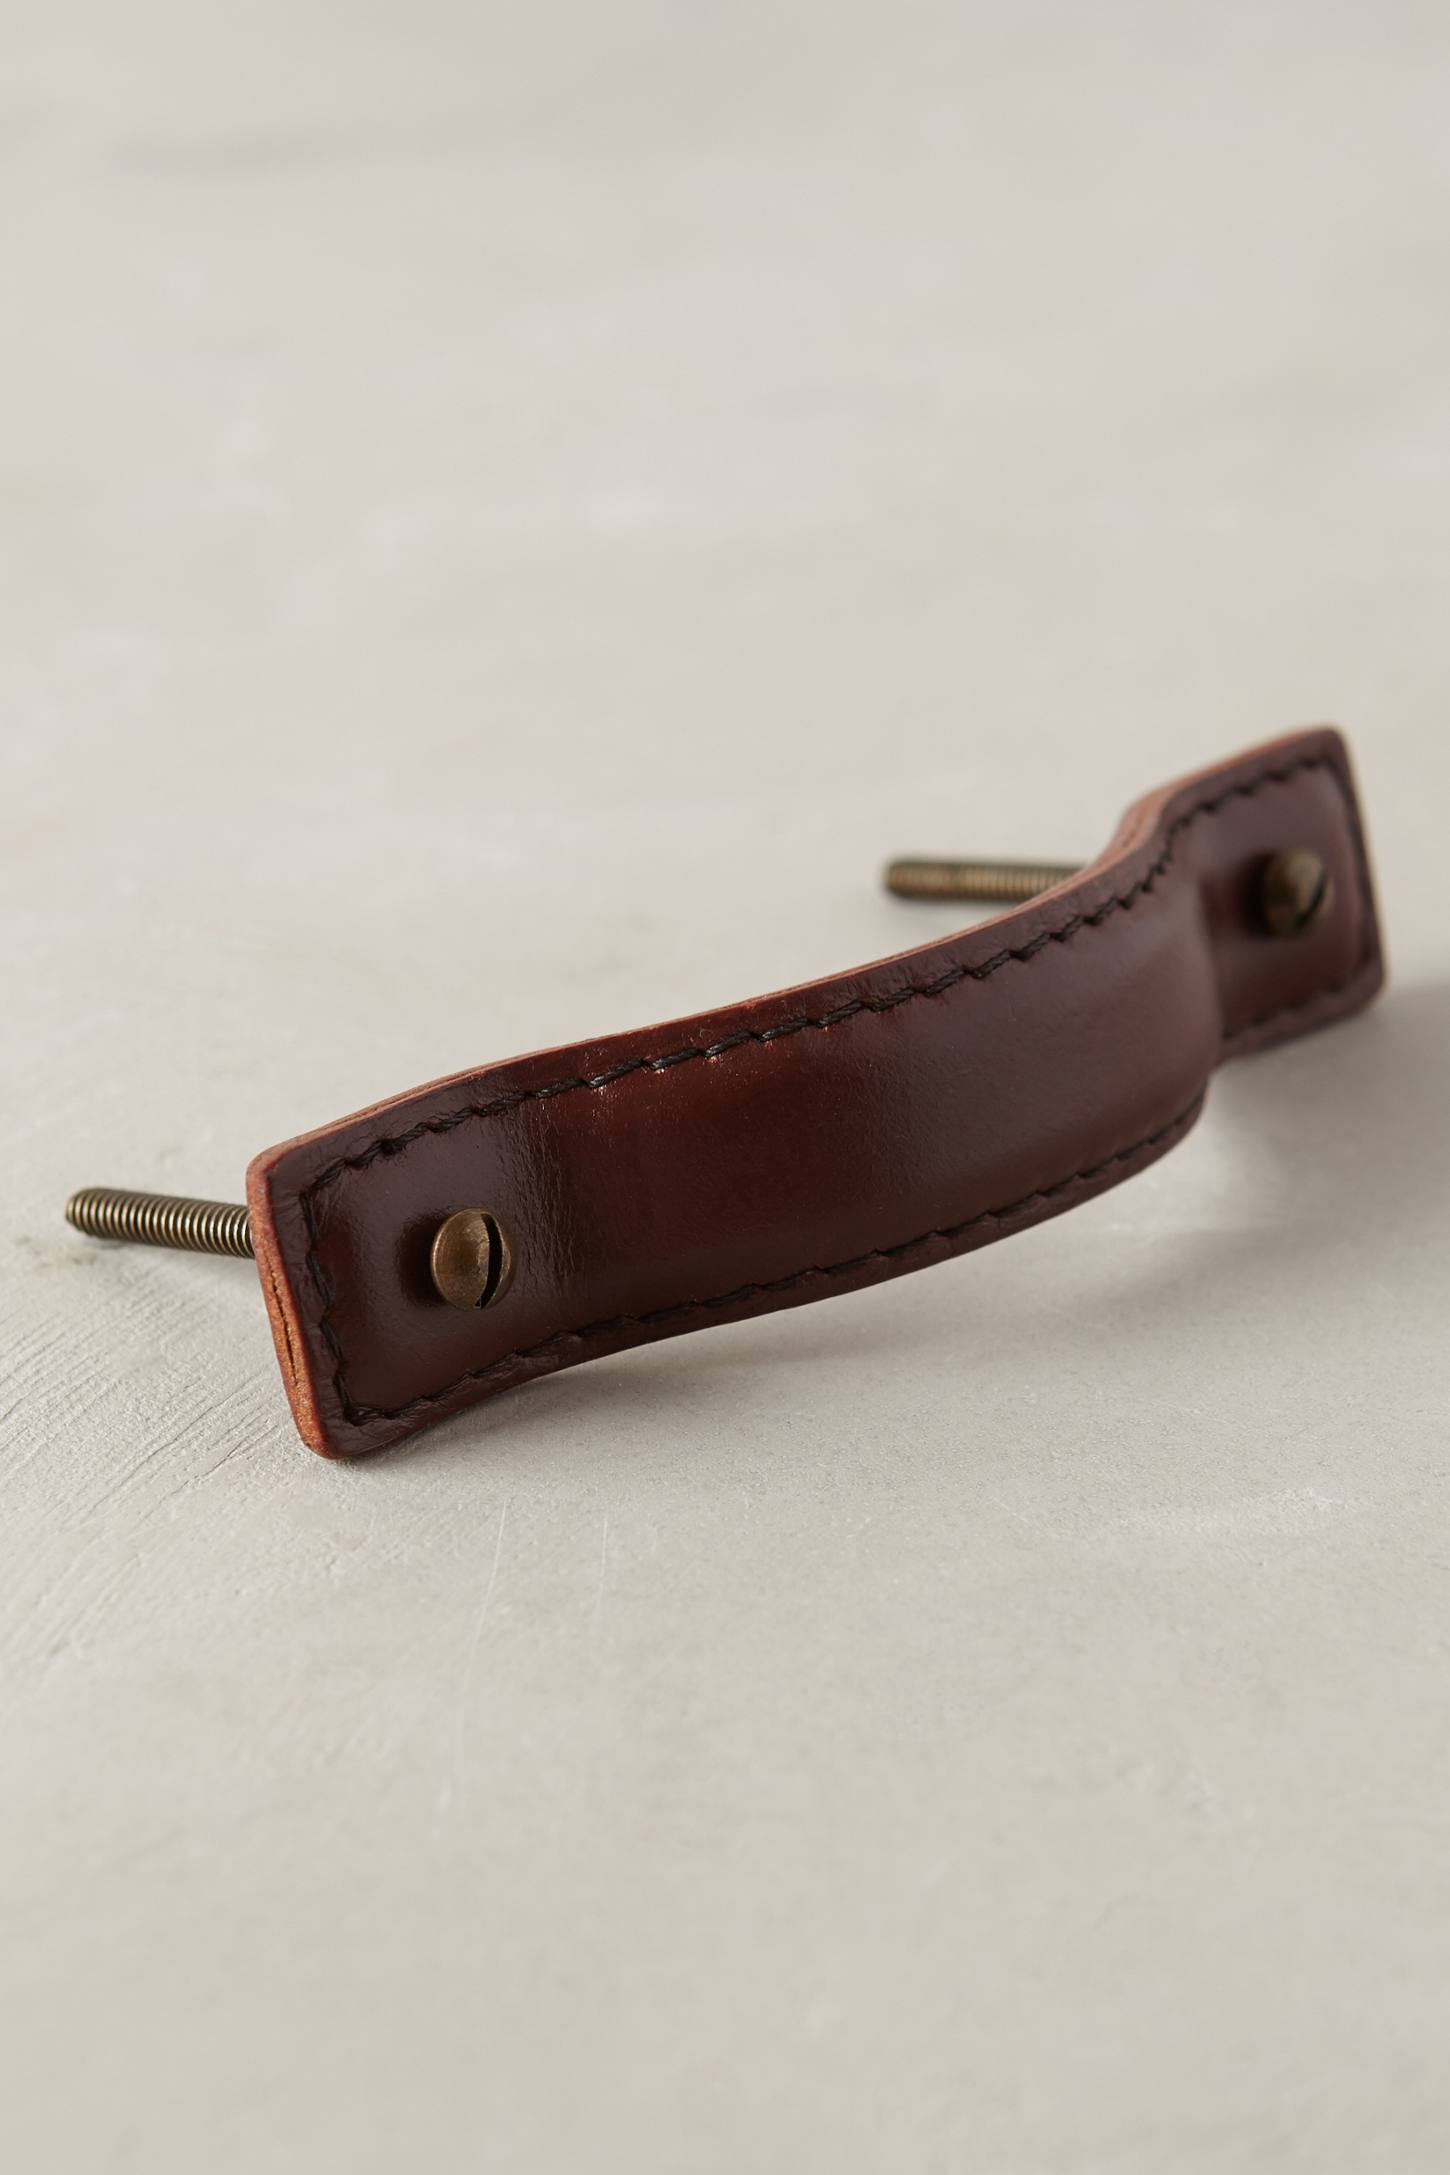 Leather stitch handle